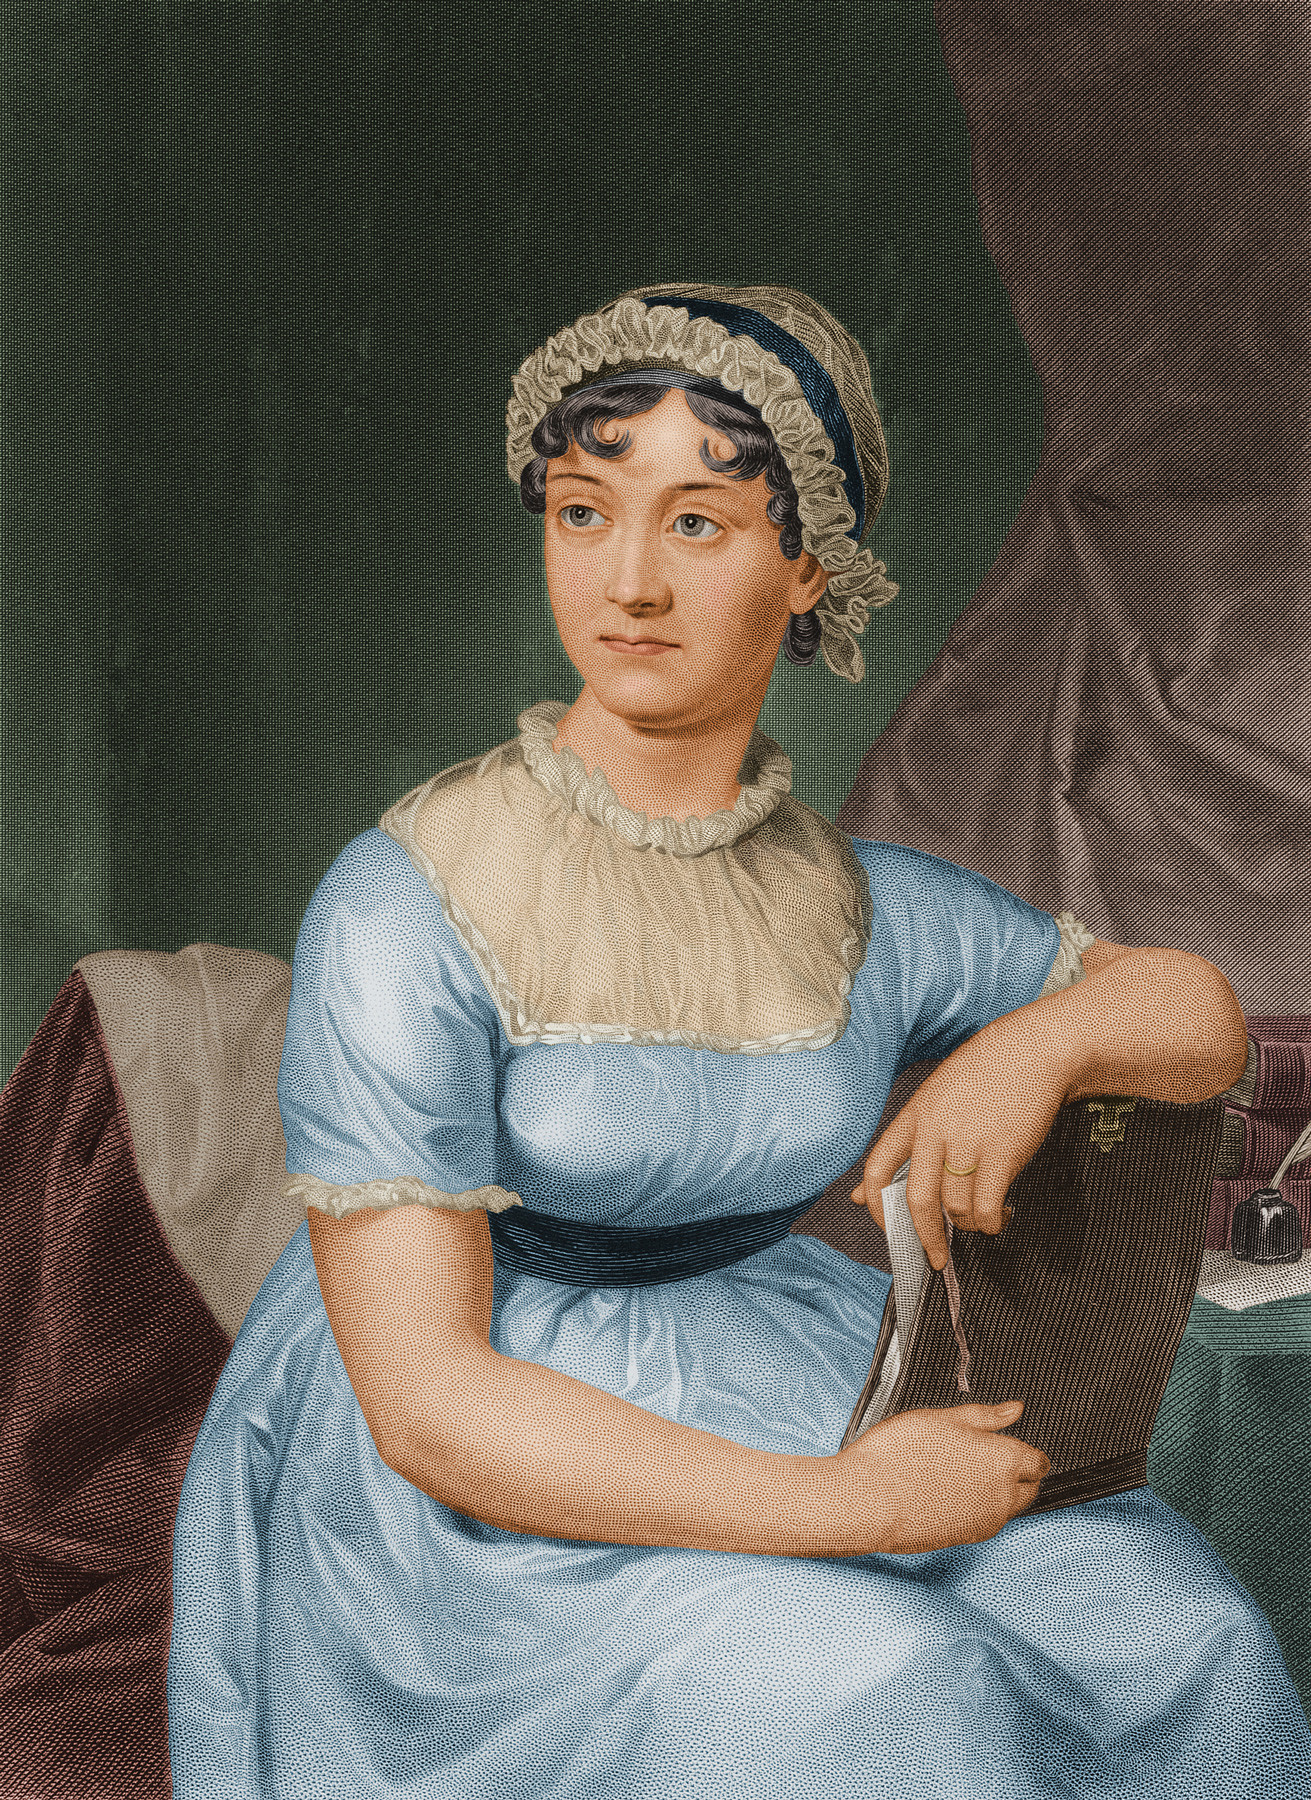 English author Jane Austen circa 1790.